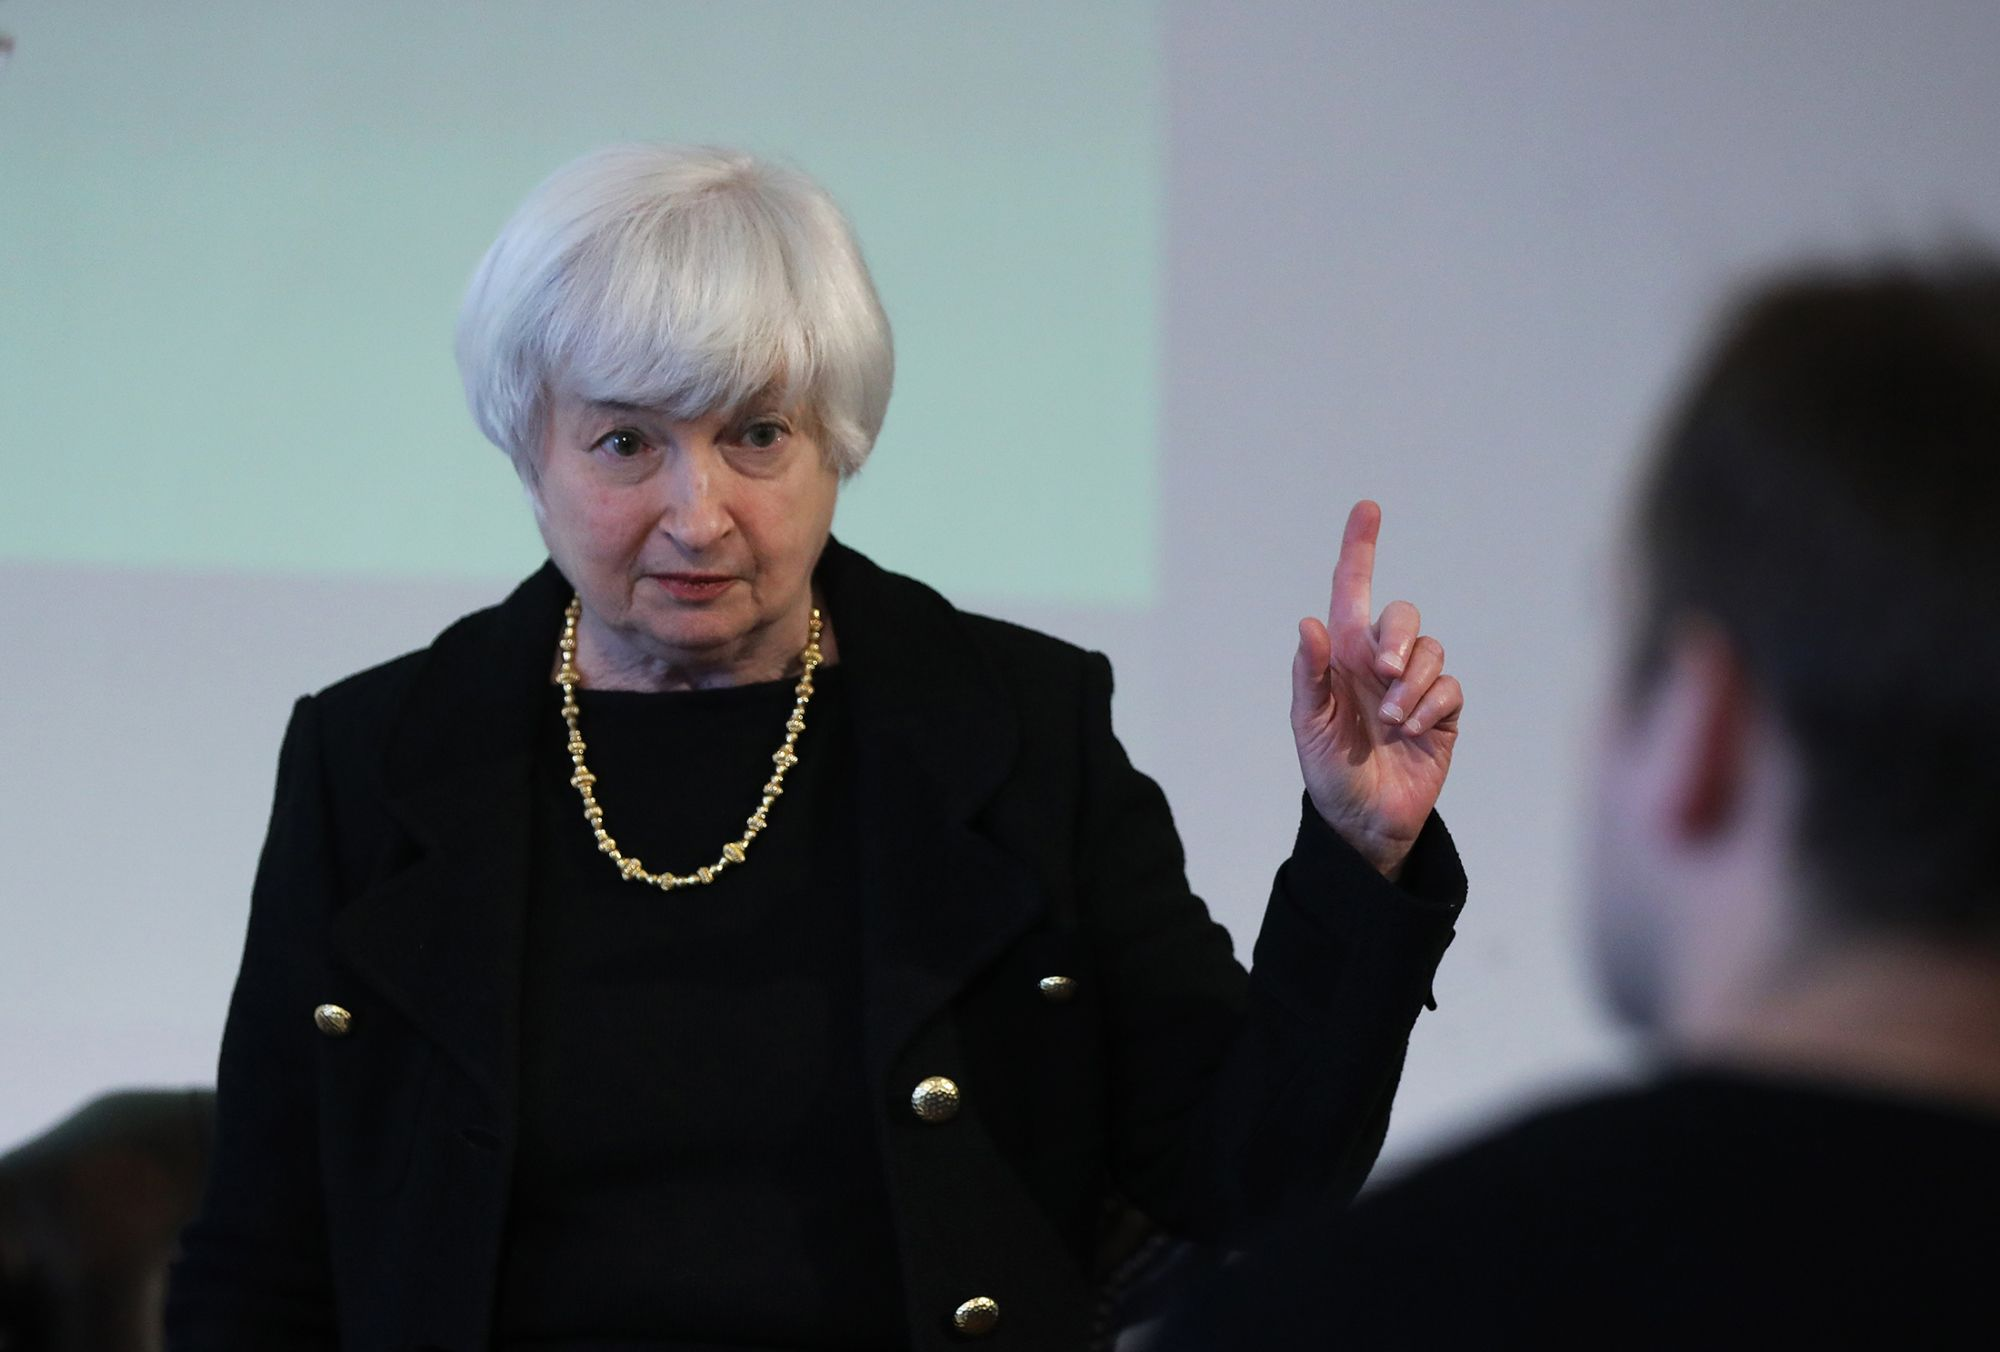 No Summertime Blues for Investec as Yellen Renews Risk Rally